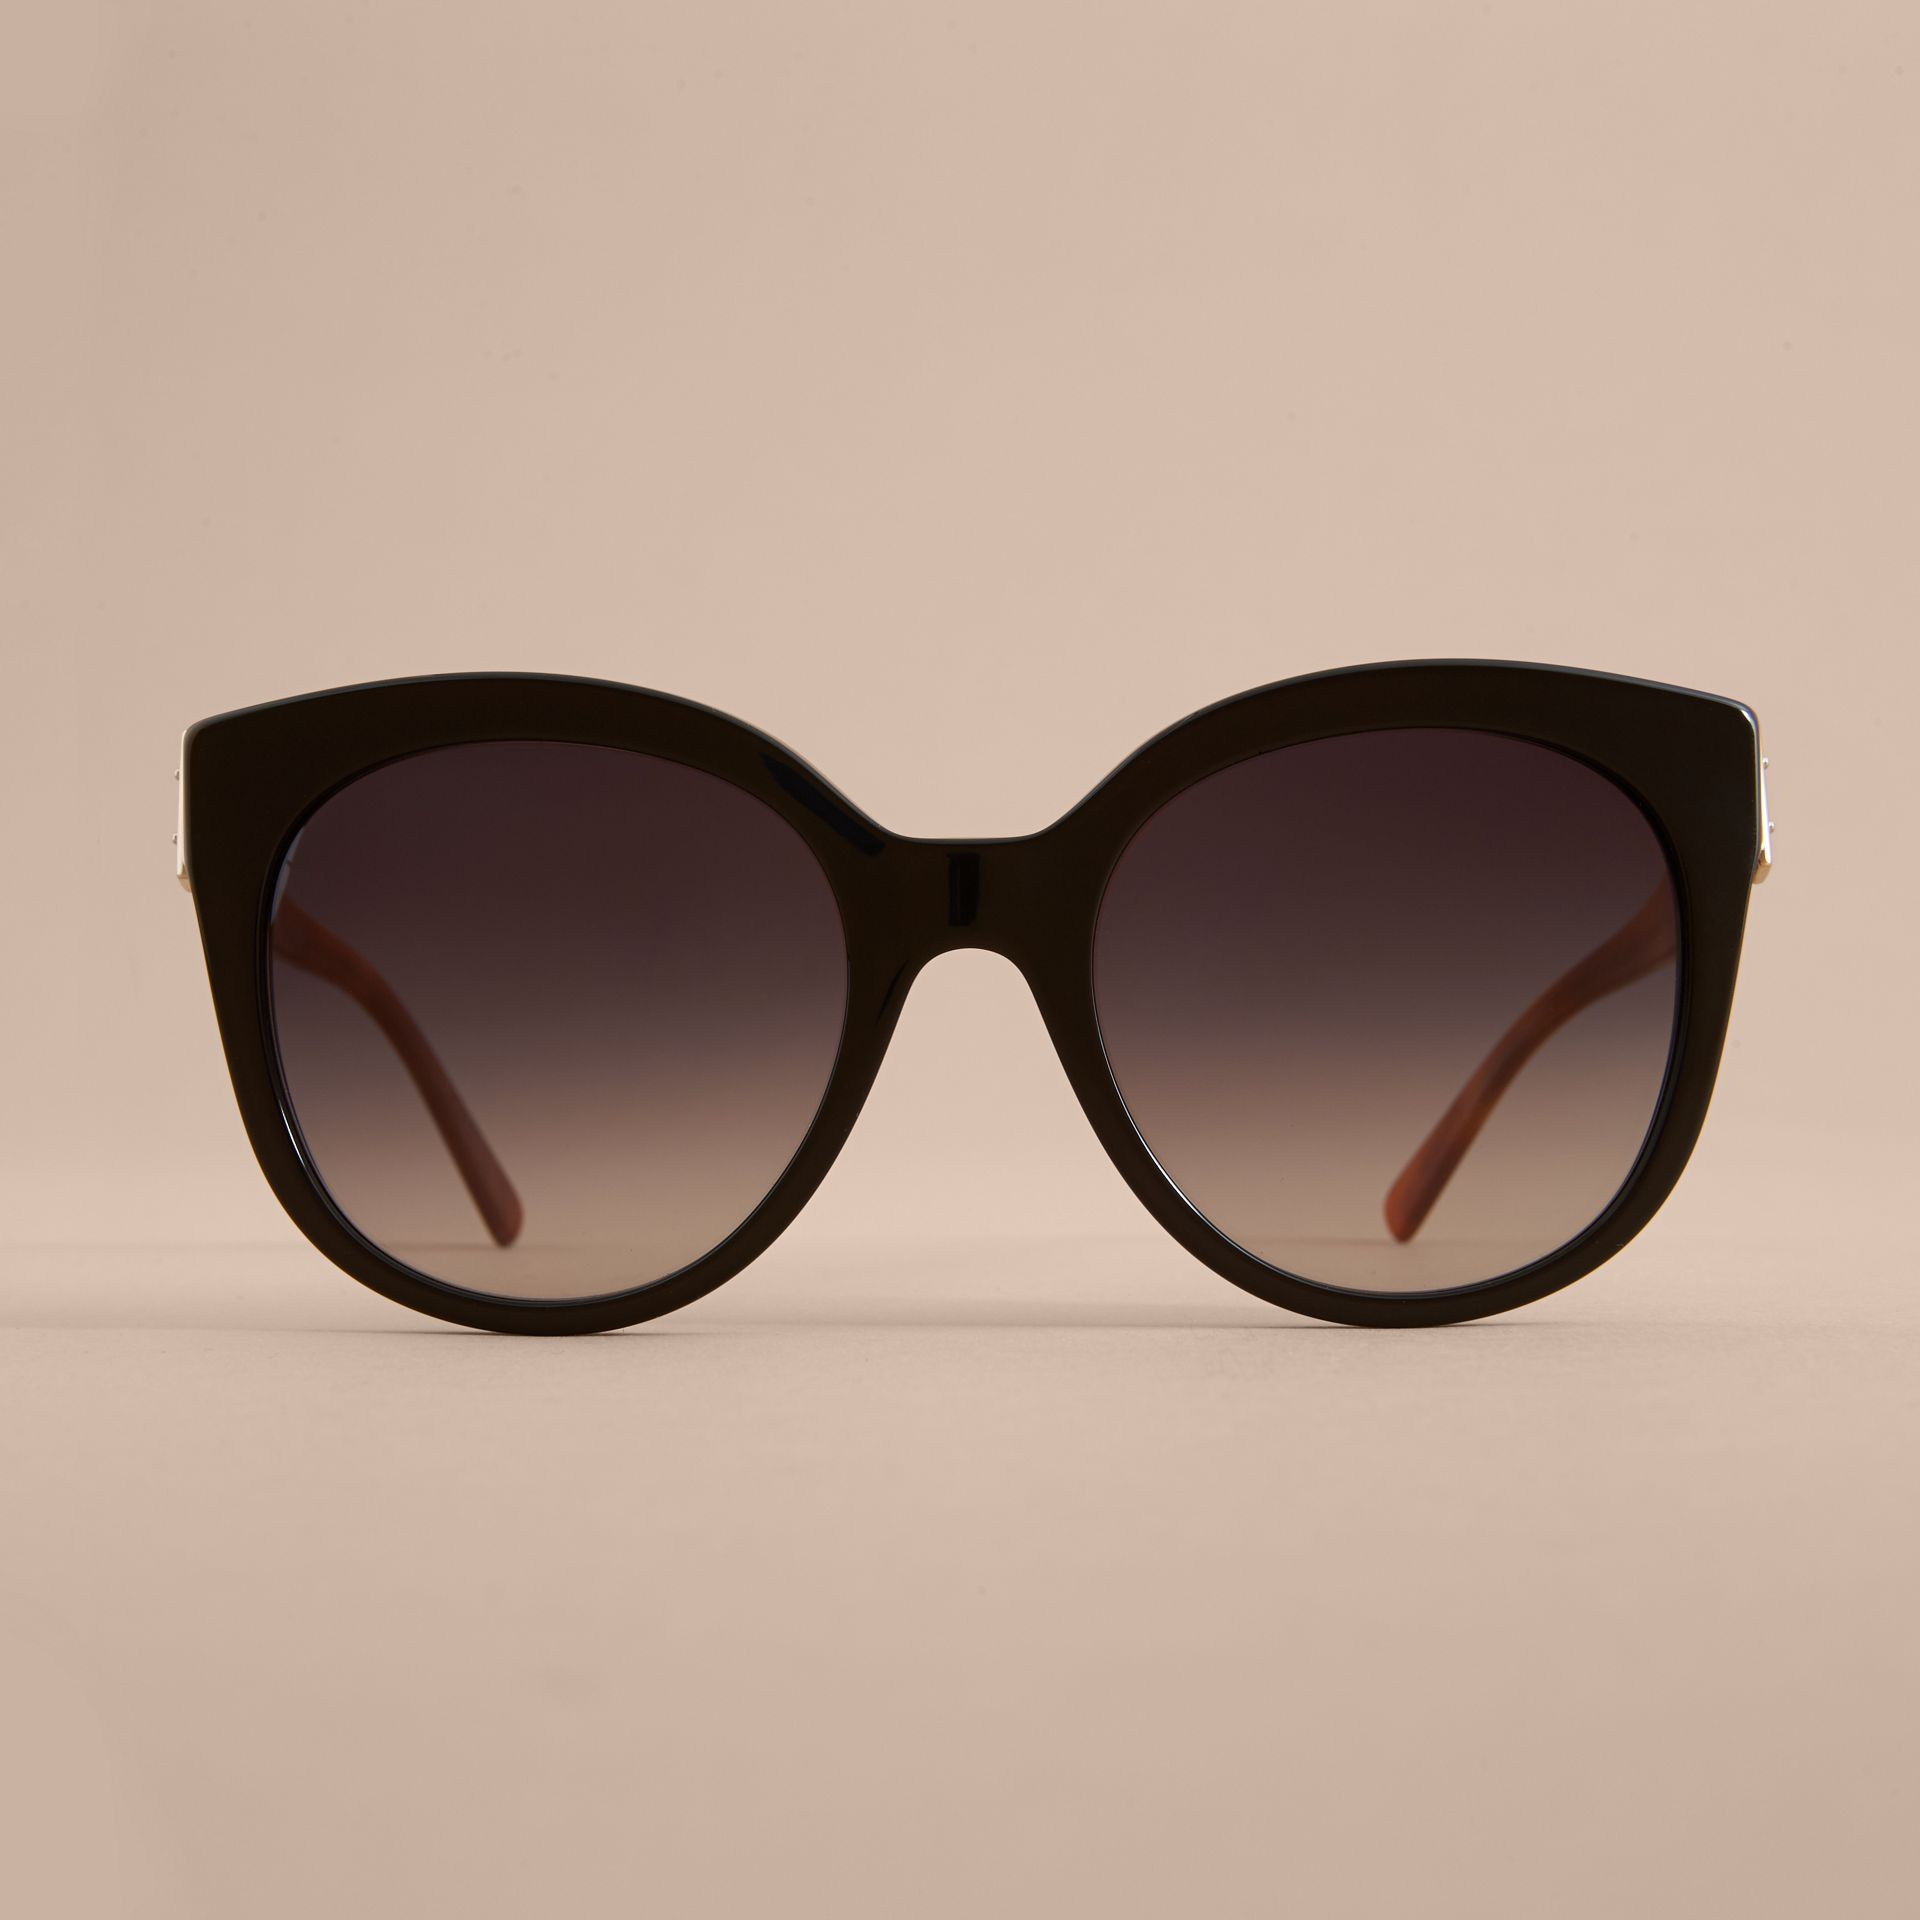 Buckle Detail Cat-eye Frame Sunglasses in Black - Women | Burberry Hong Kong - gallery image 2